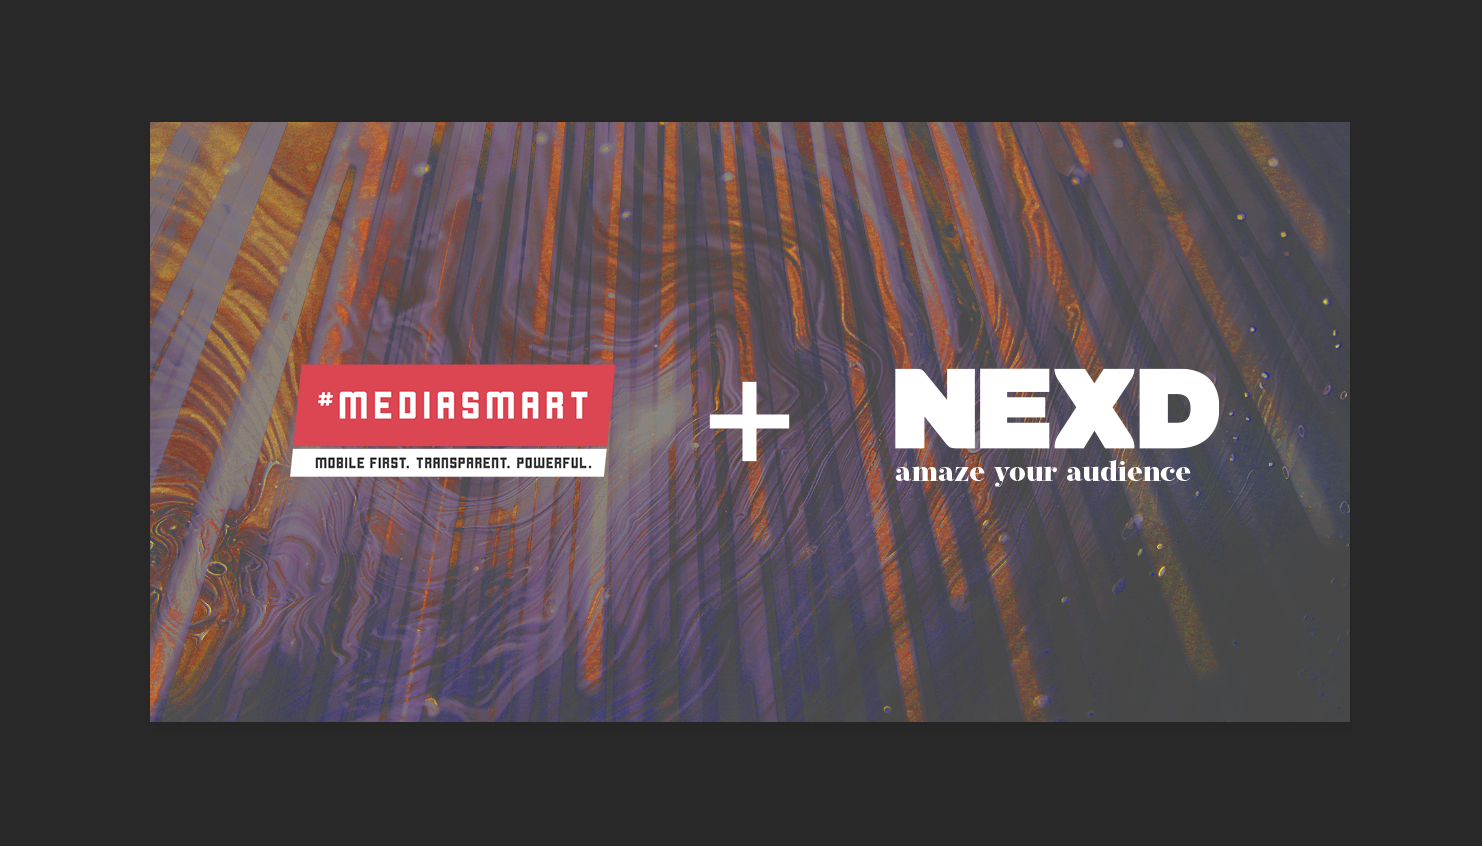 MediaSmart & NEXD Unveil Innovative Programmatic Rich Media Partnership